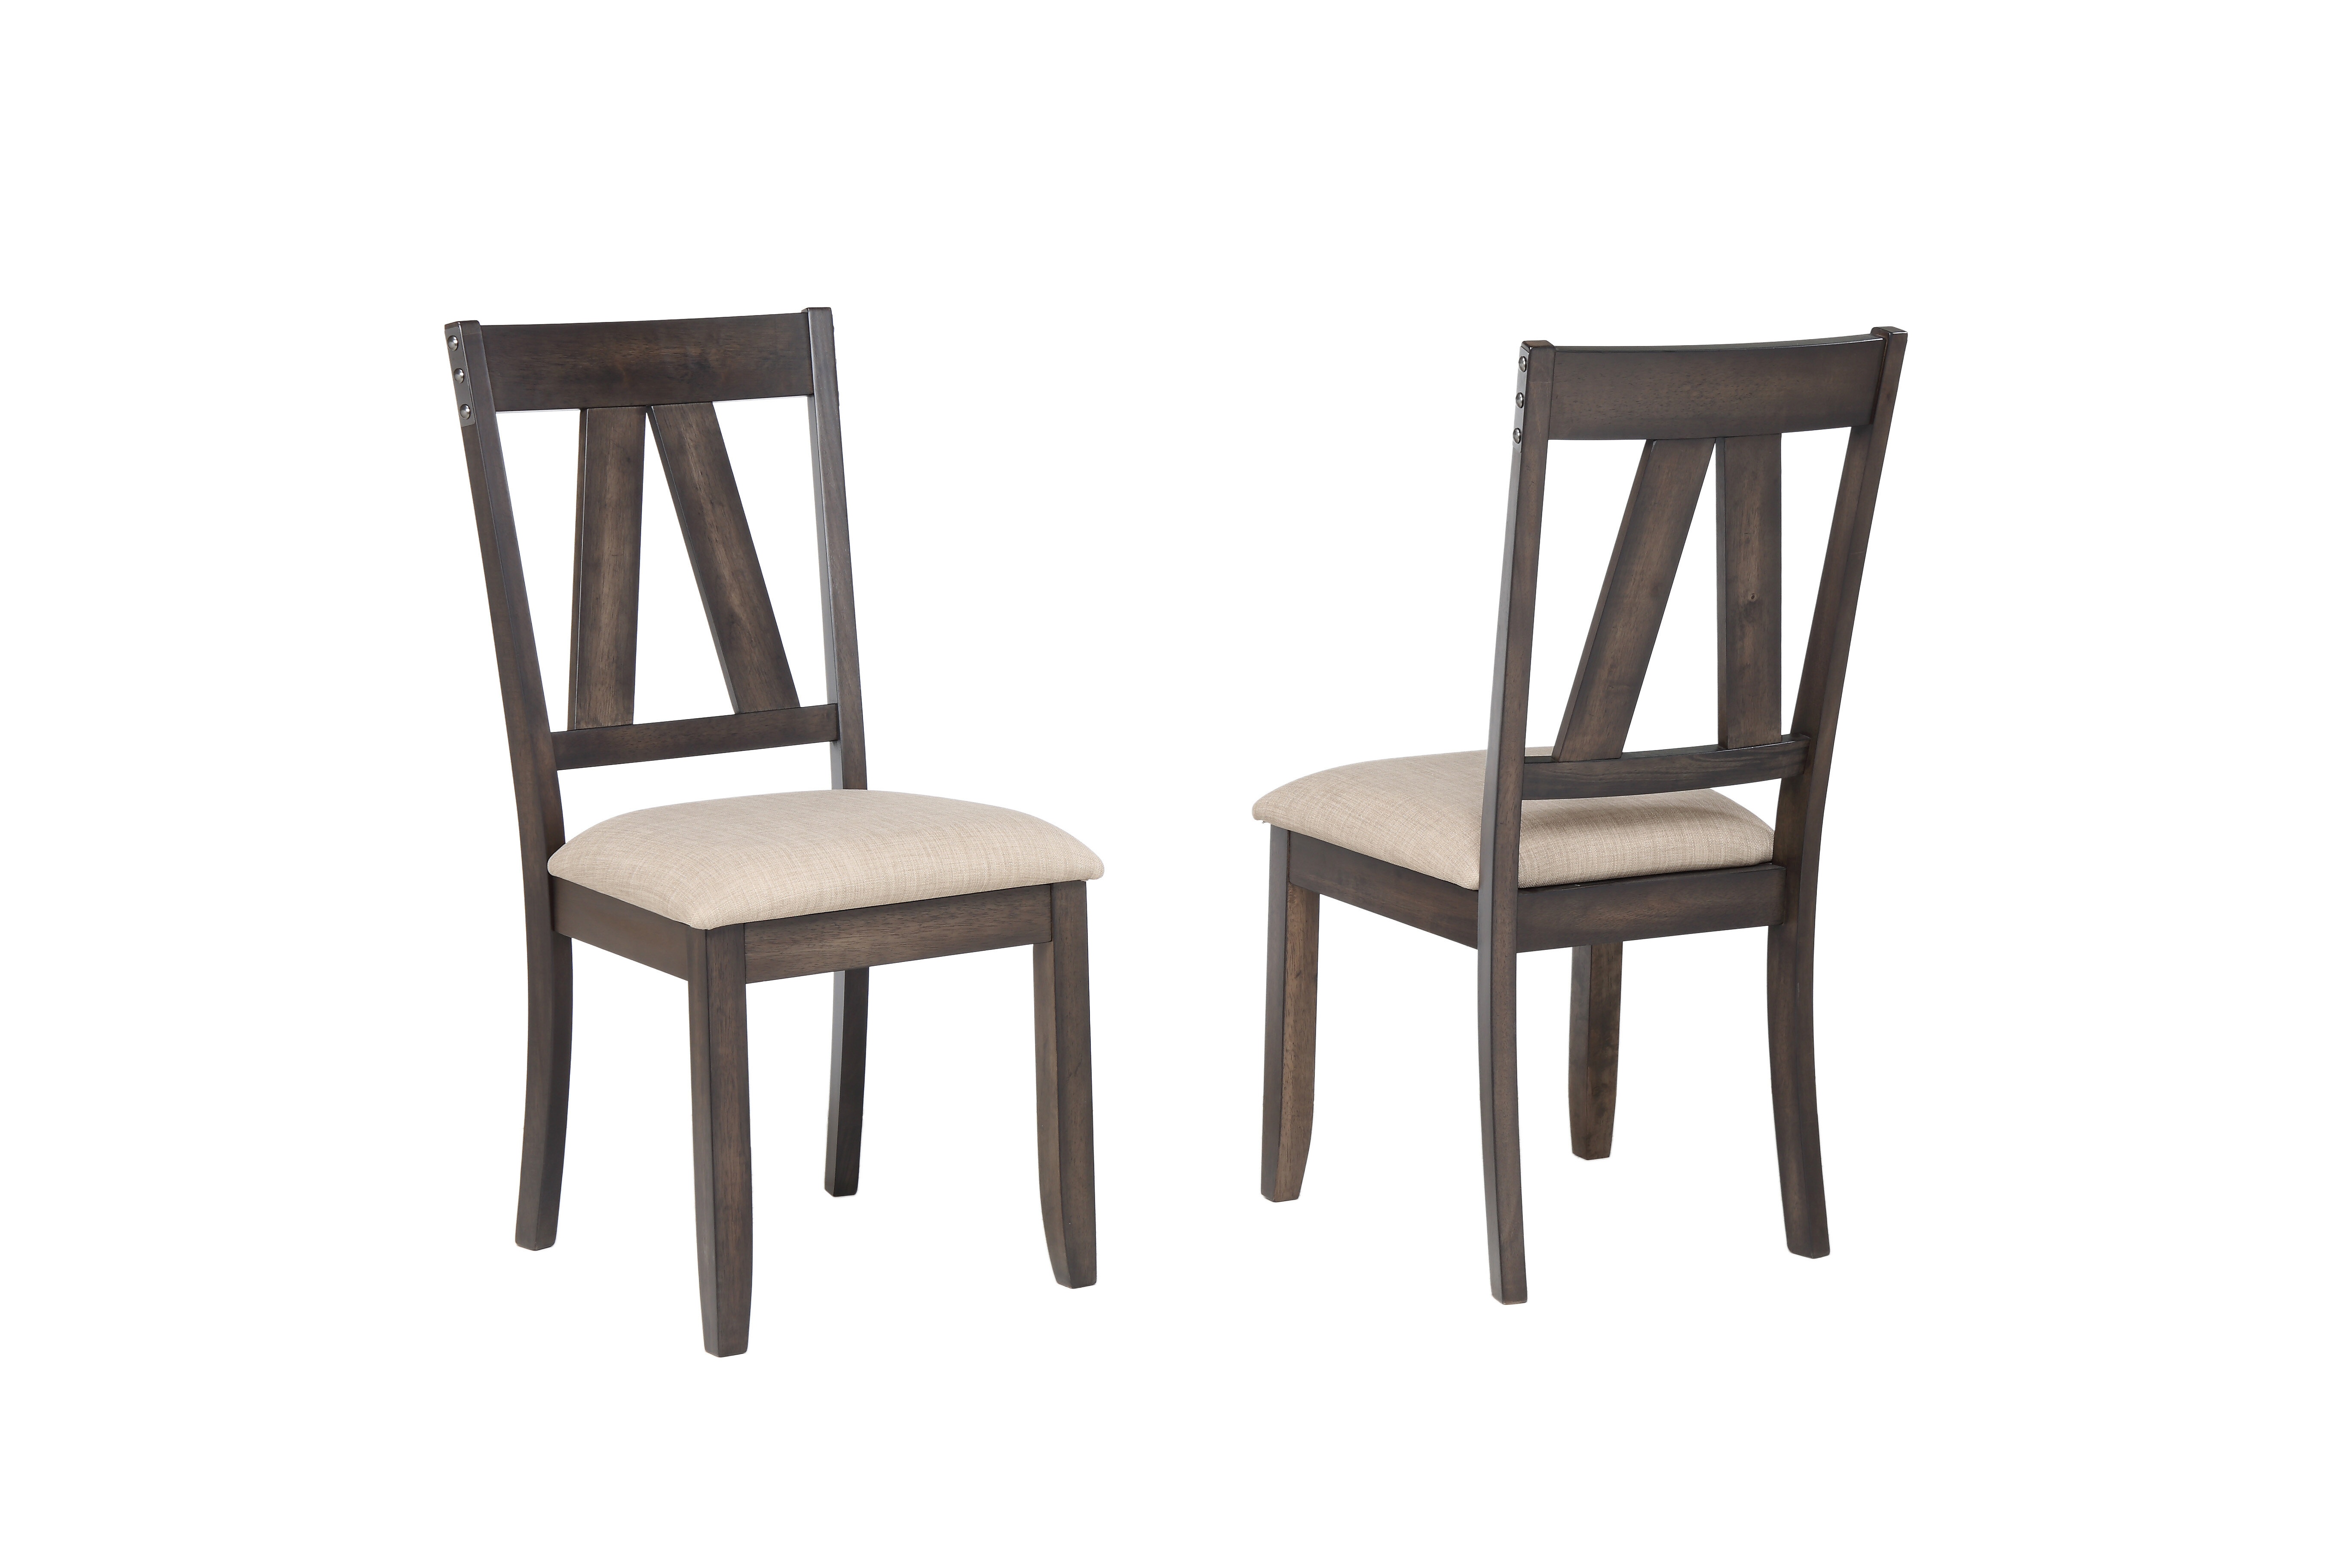 Wood Loon Peak Kitchen Dining Chairs You Ll Love In 2021 Wayfair